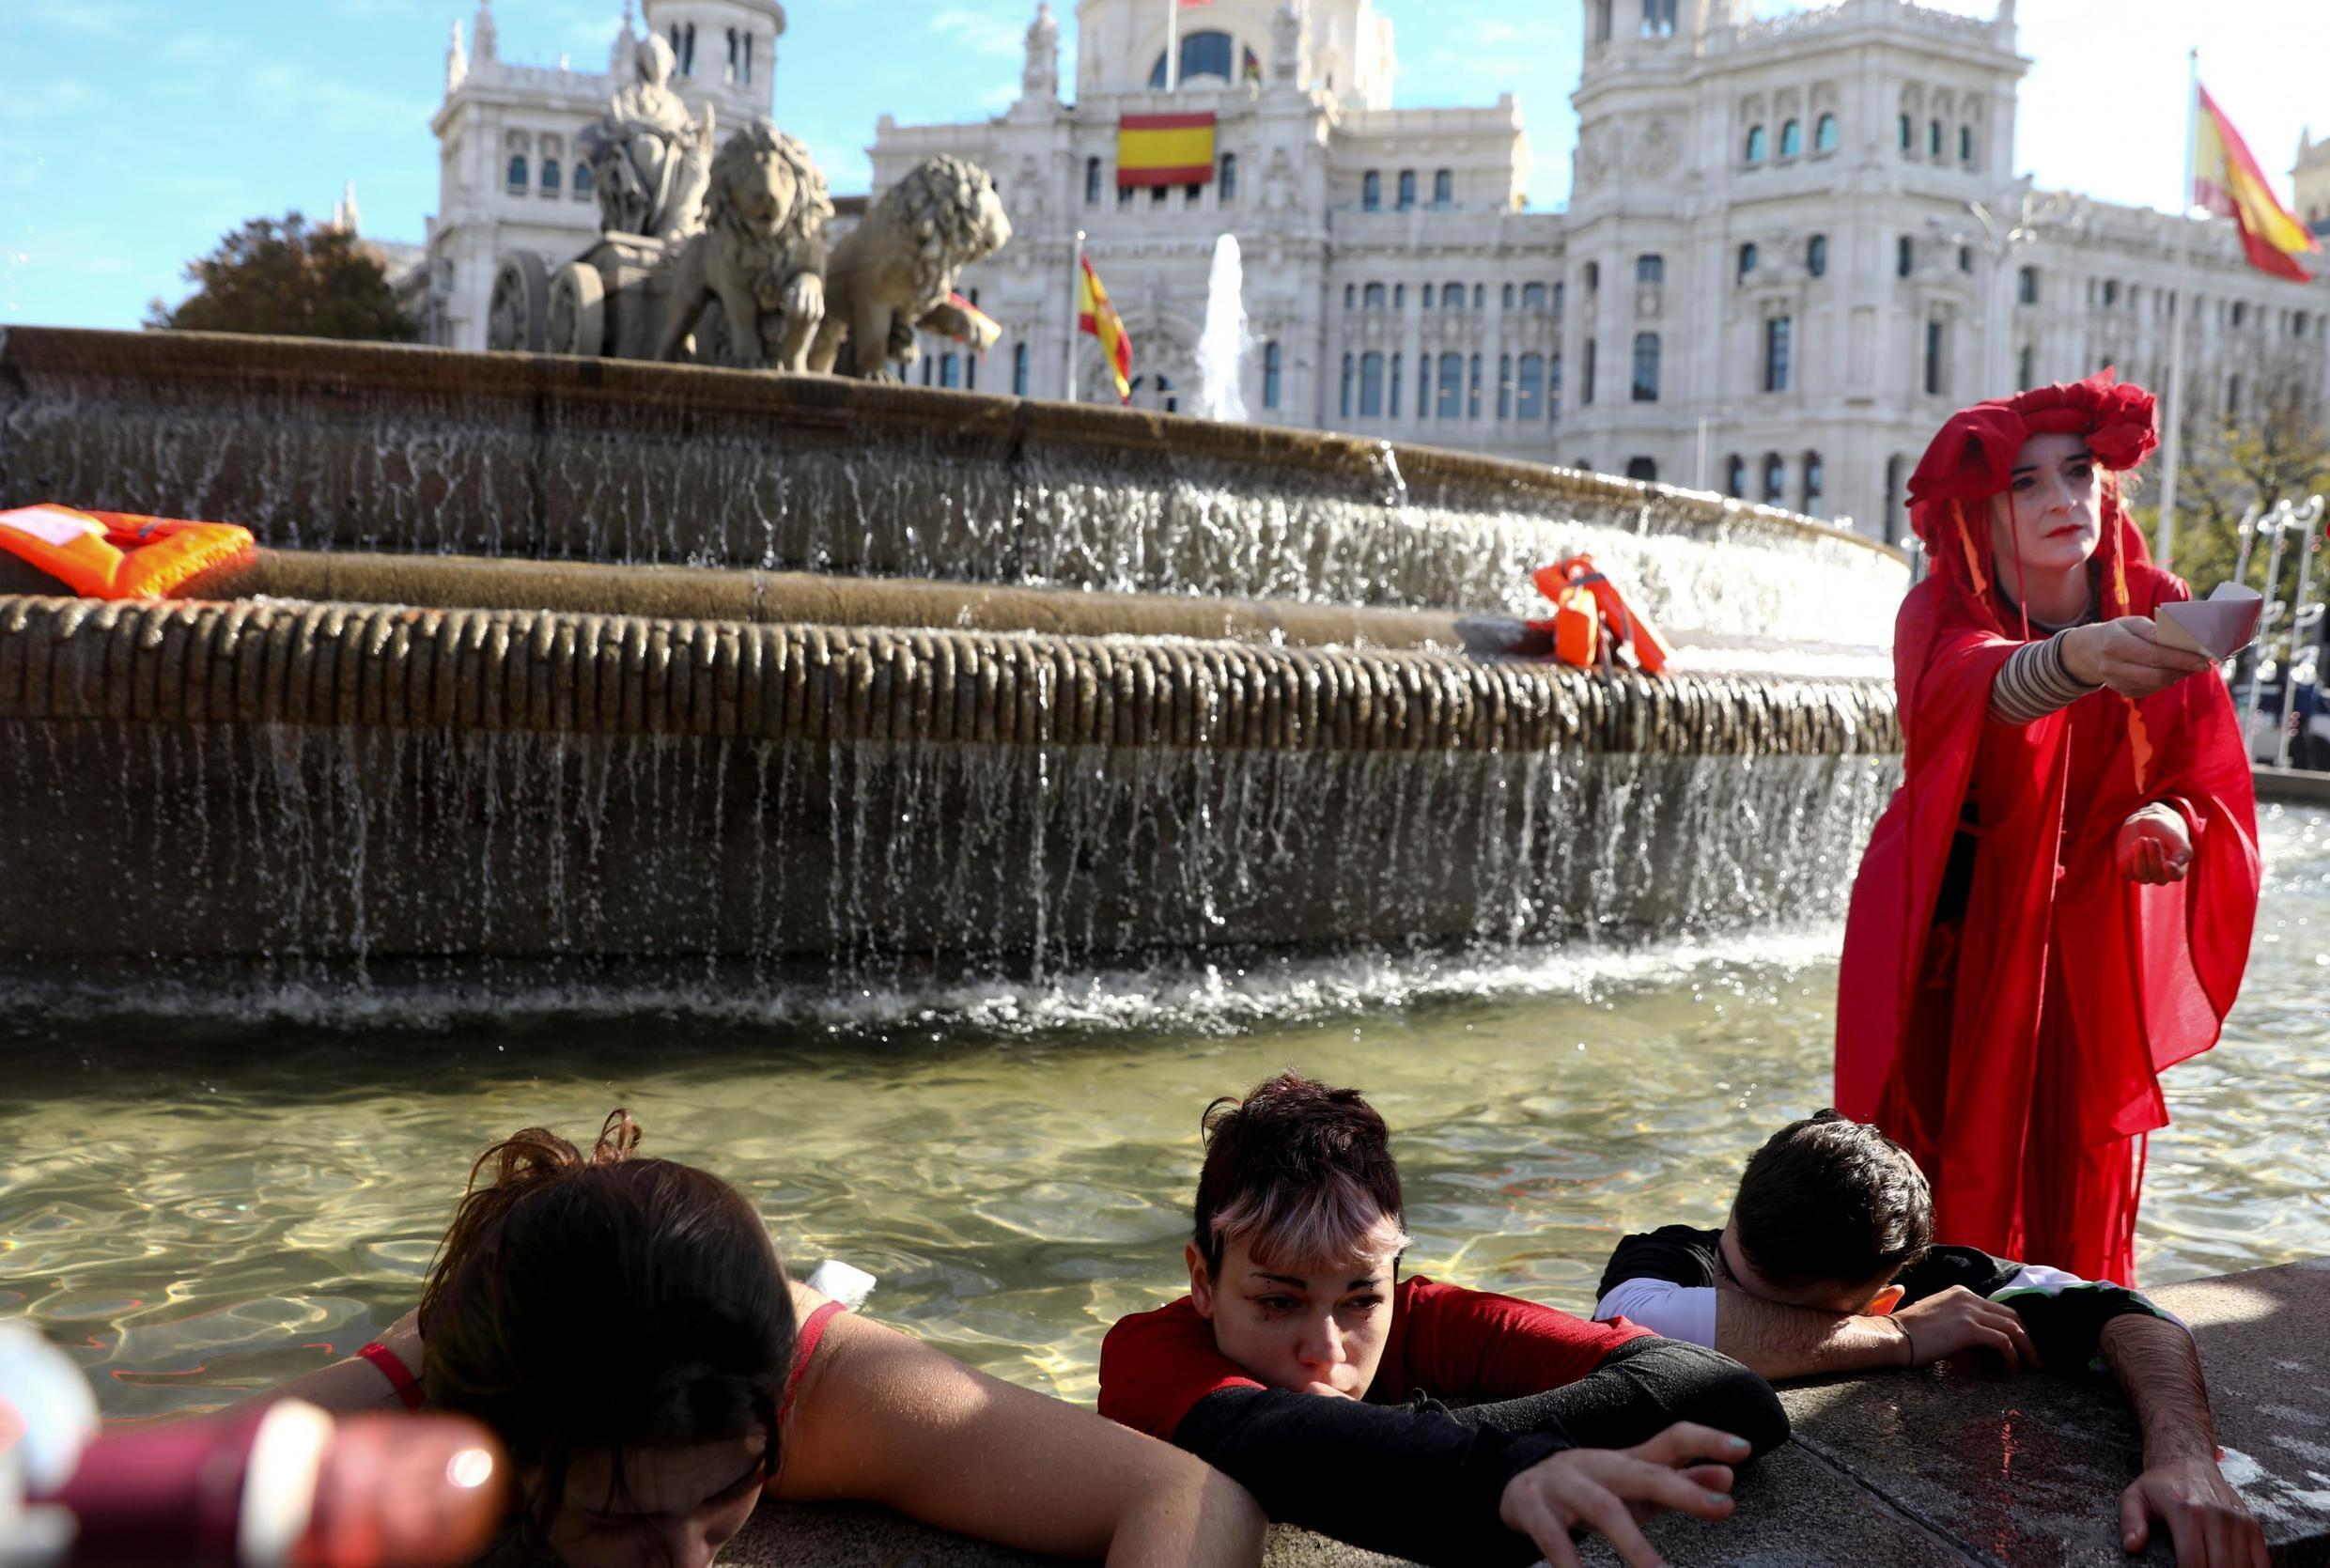 Members of Extinction Rebellion group stage a protest at Cibeles Fountain during the U.N. climate change conference (COP25) in Madrid, Spain, December 3, 2019.